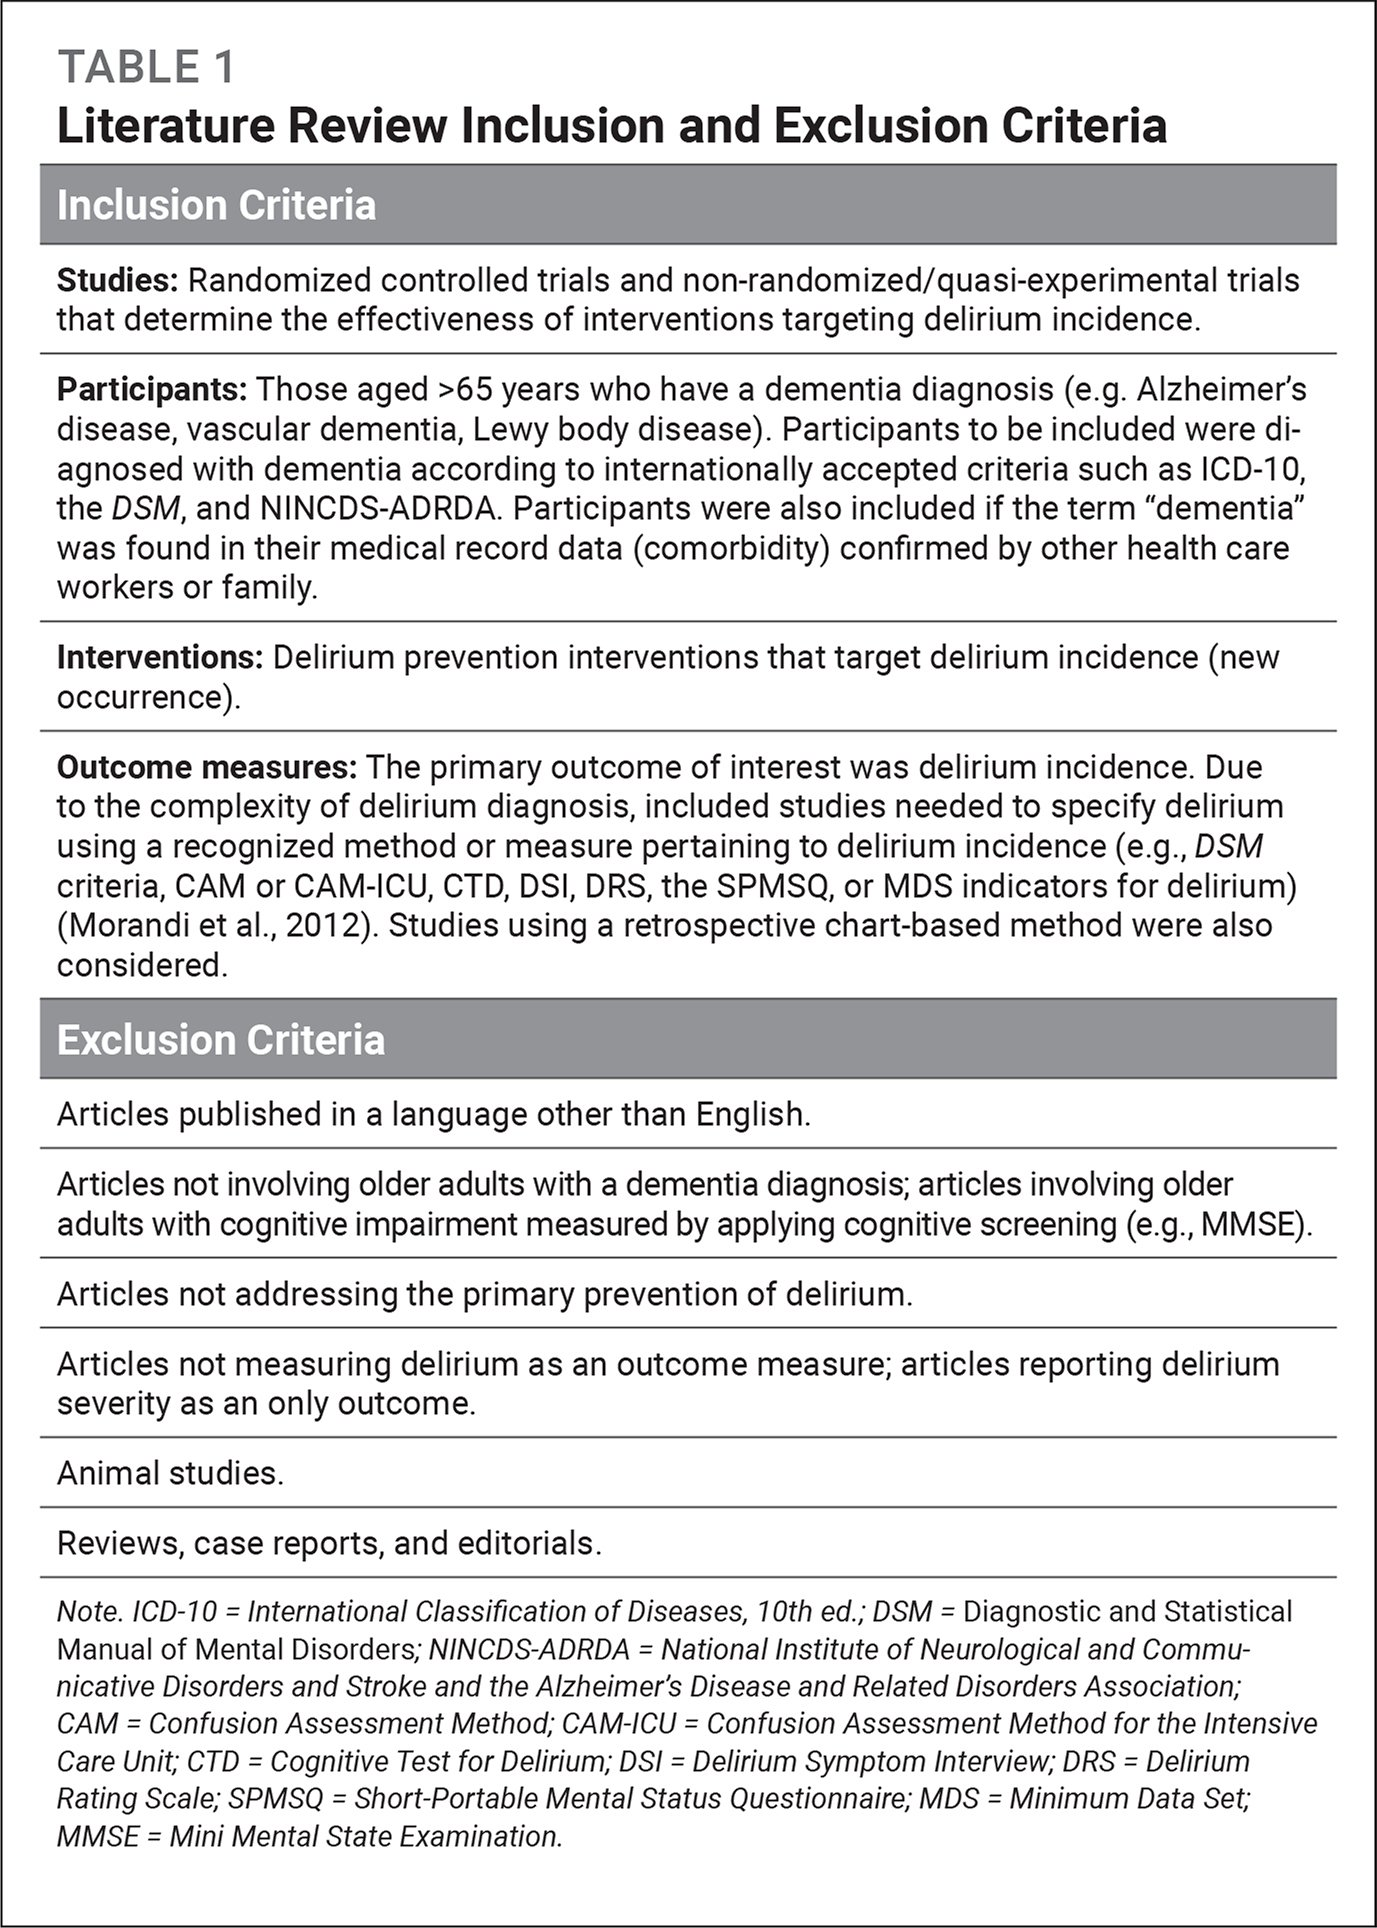 Literature Review Inclusion and Exclusion Criteria